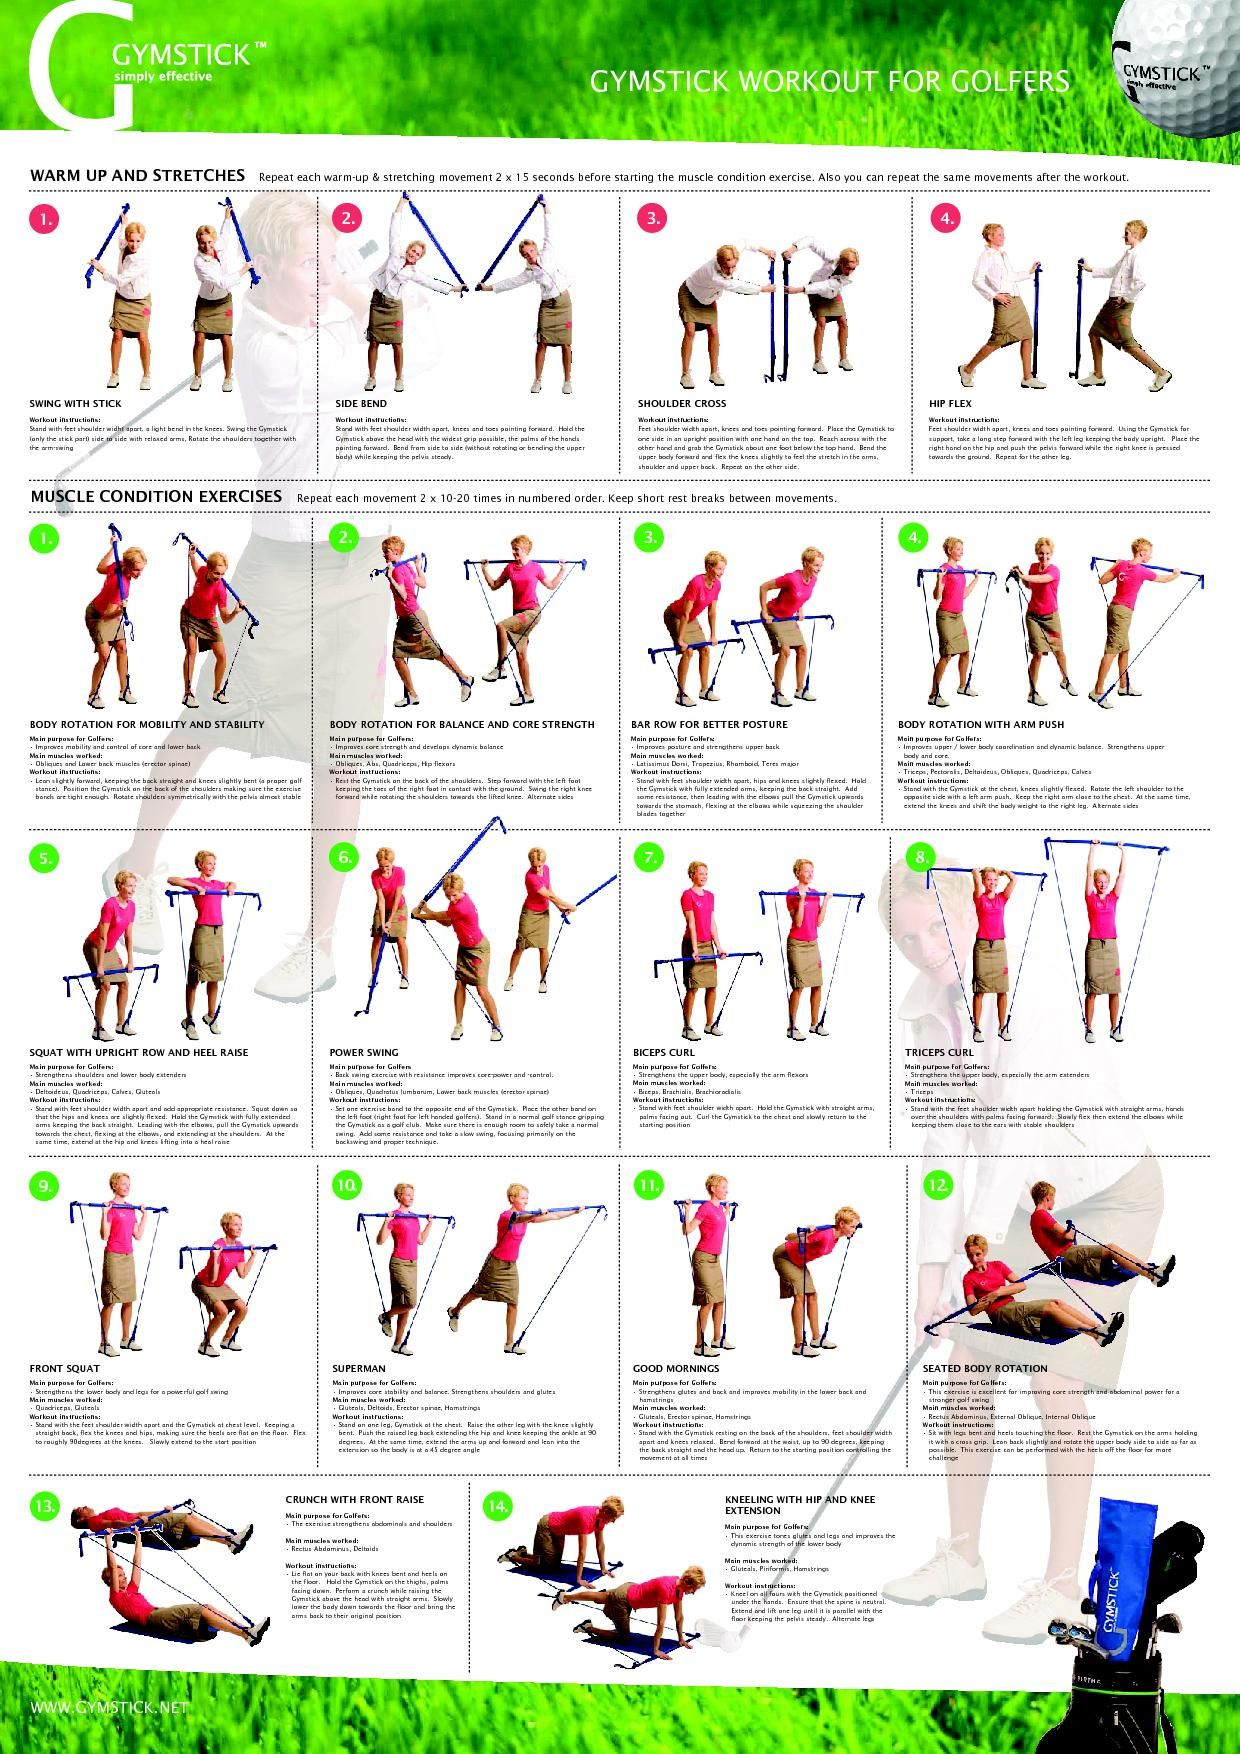 recipe: gym exercises for golfers [10]